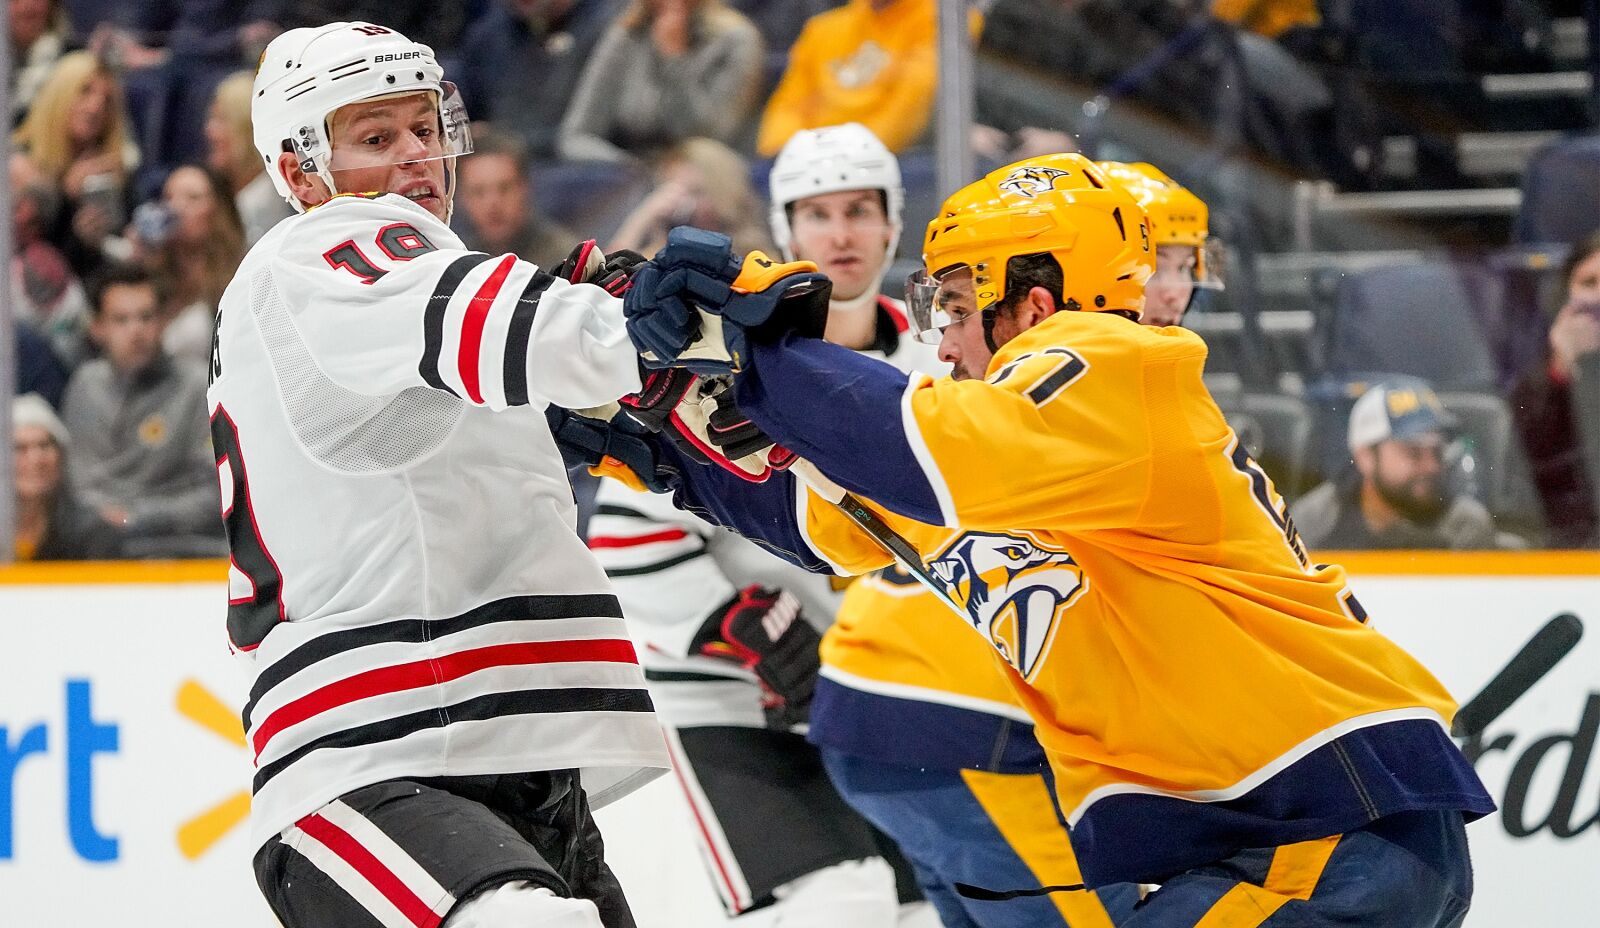 Predators Downward Spiral Continues With Home Loss to Chicago